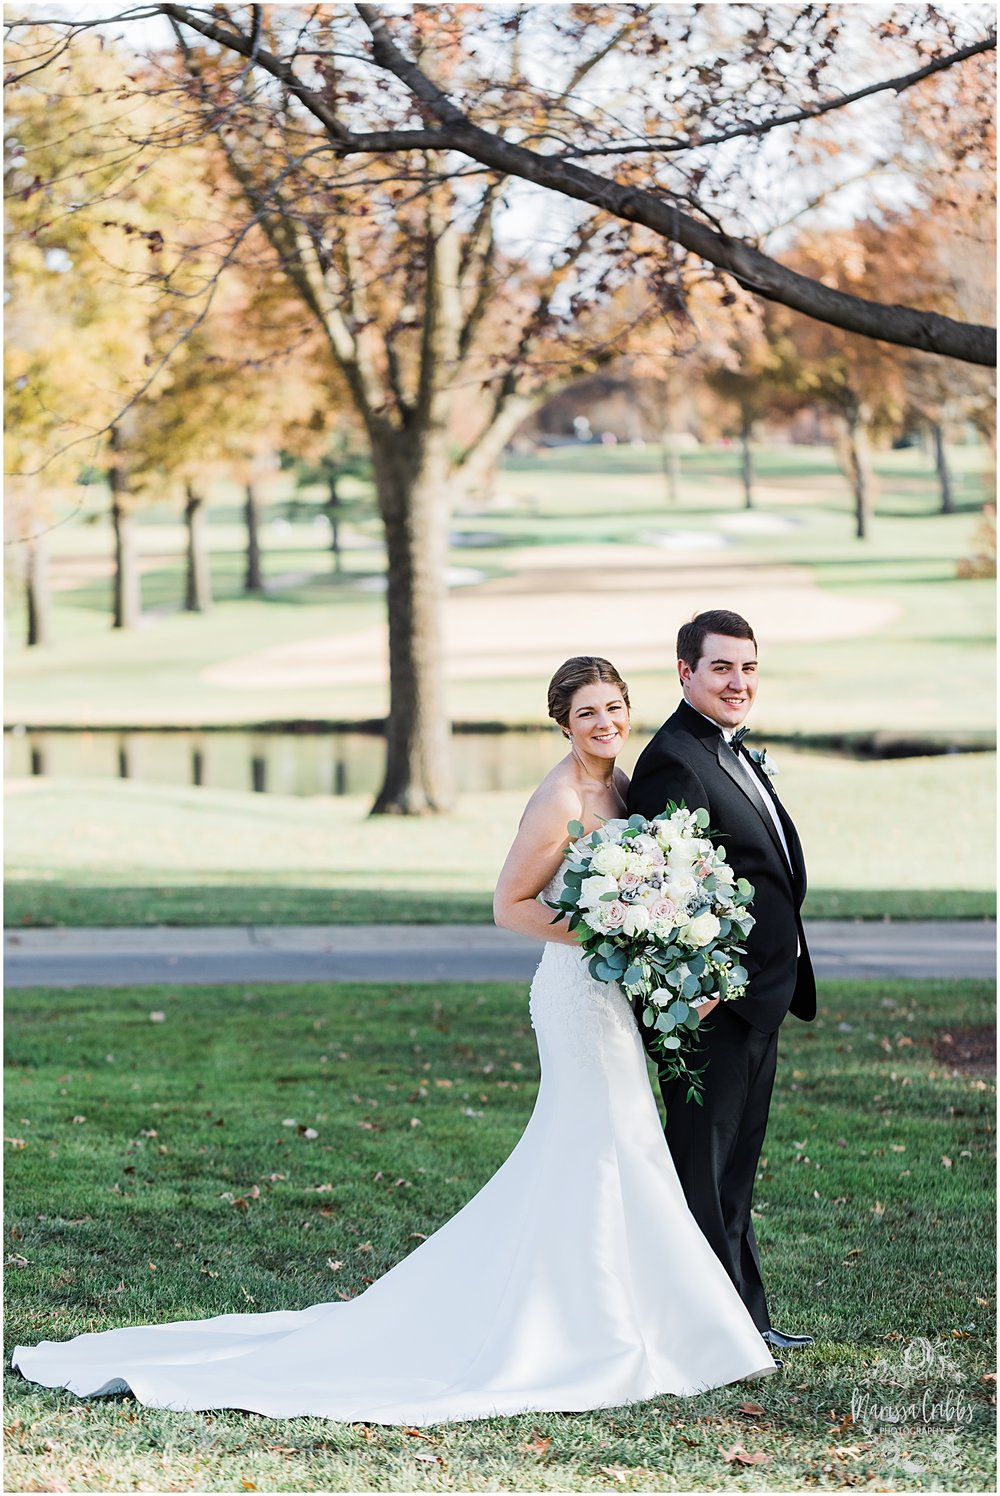 JOE & CAROLINE MARRIED | INDIAN HILLS COUNTRY CLUB | MARISSA CRIBBS PHOTOGRAPHY_7199.jpg